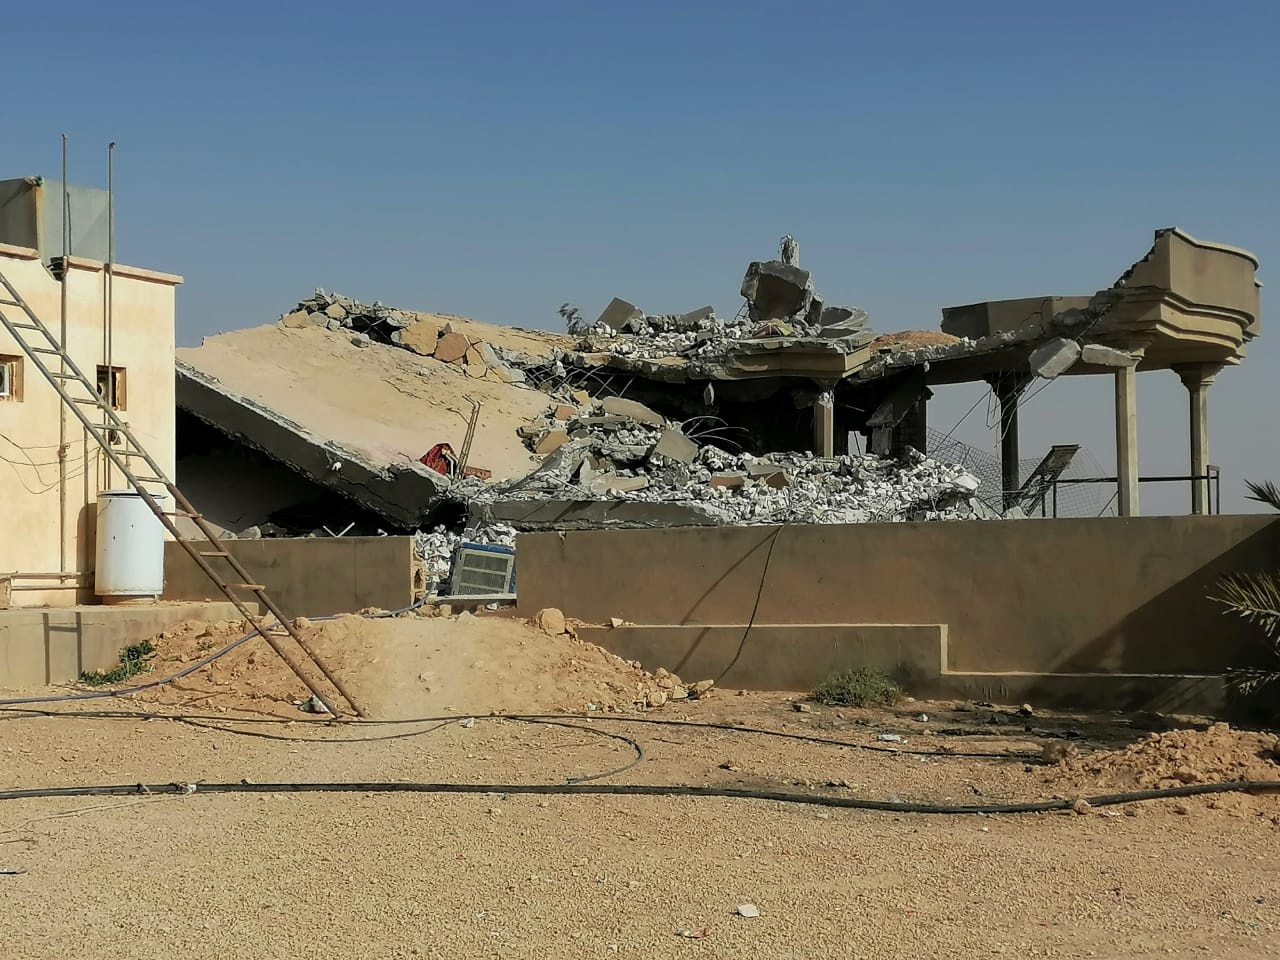 The ruins of a bombed base in Iraq.